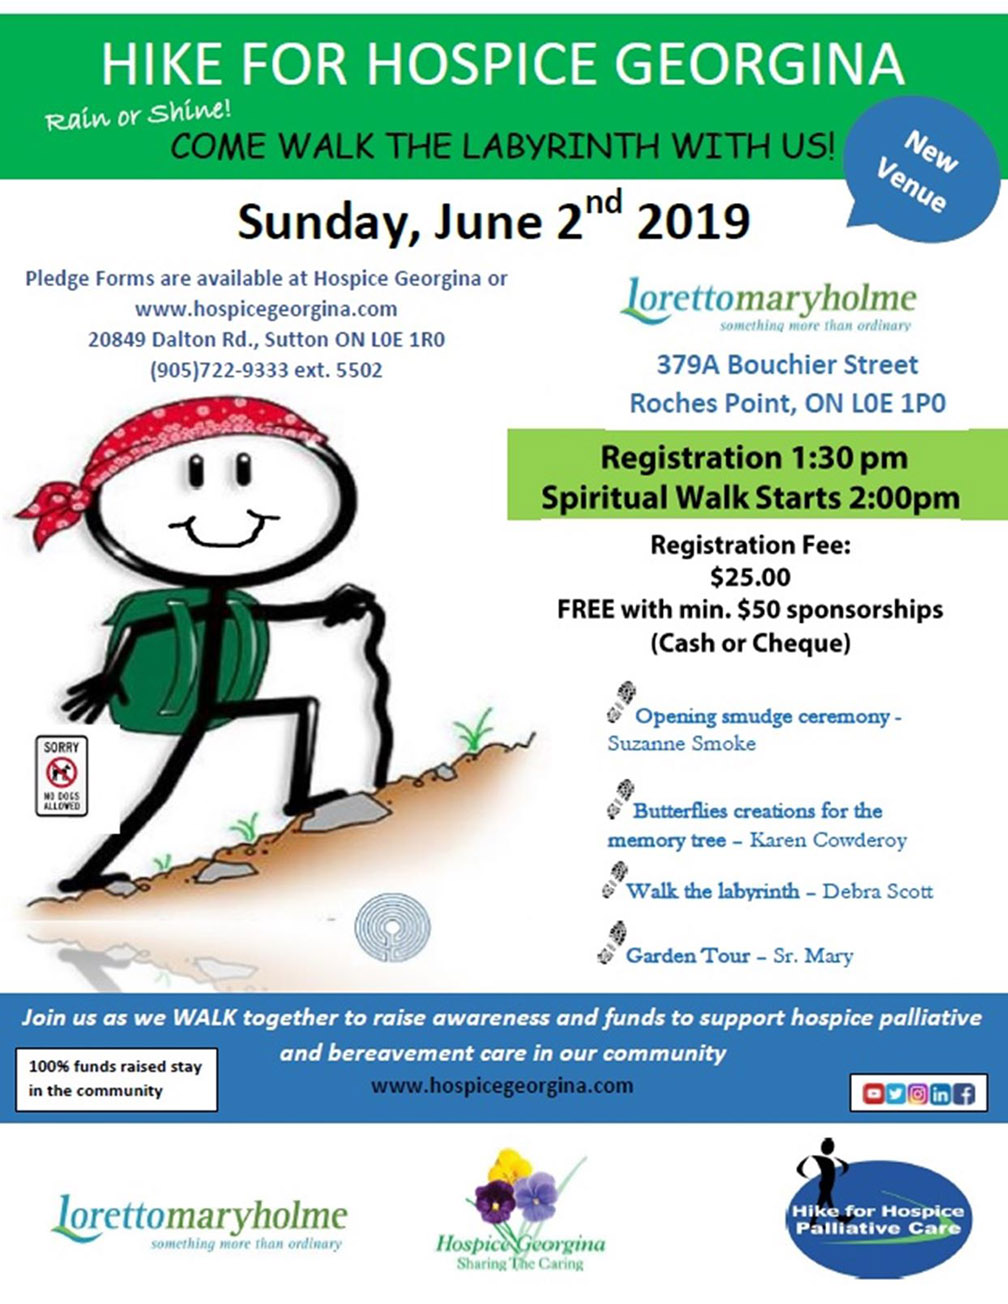 2019 06 02 hike.for.hospice